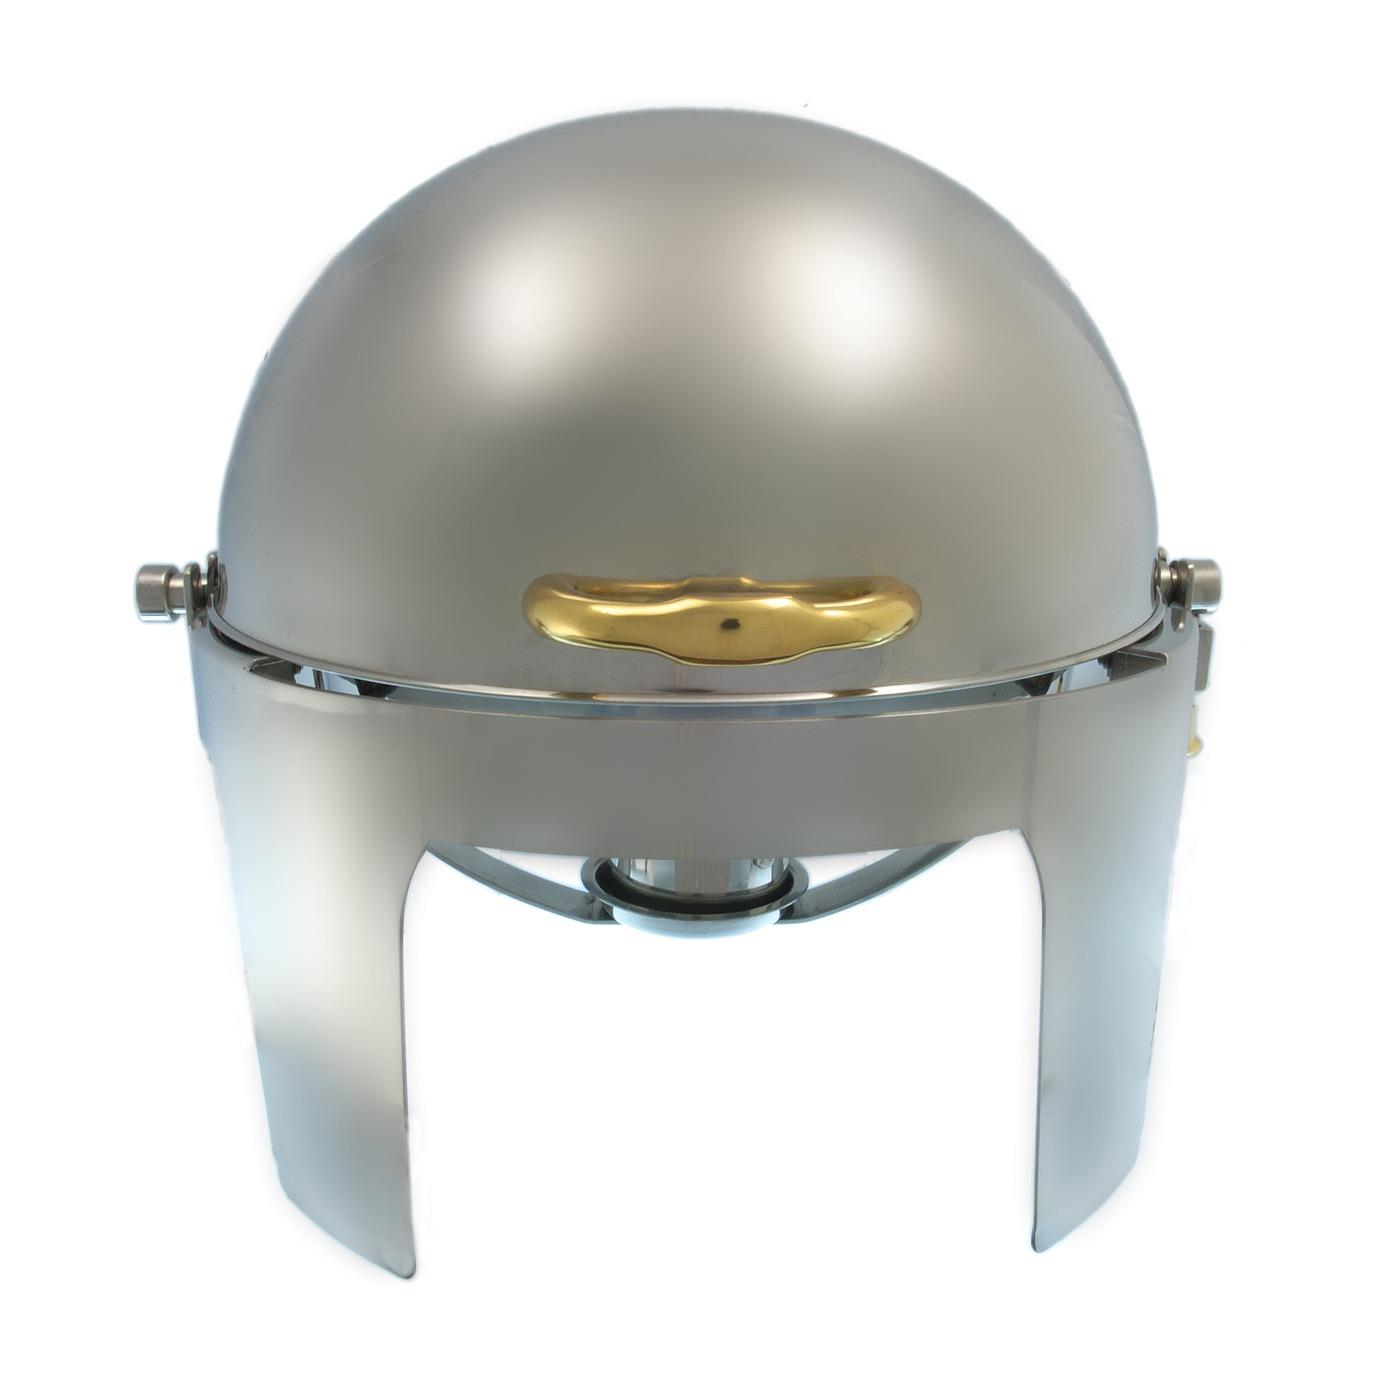 Stainless Steel Rolltop Chafer